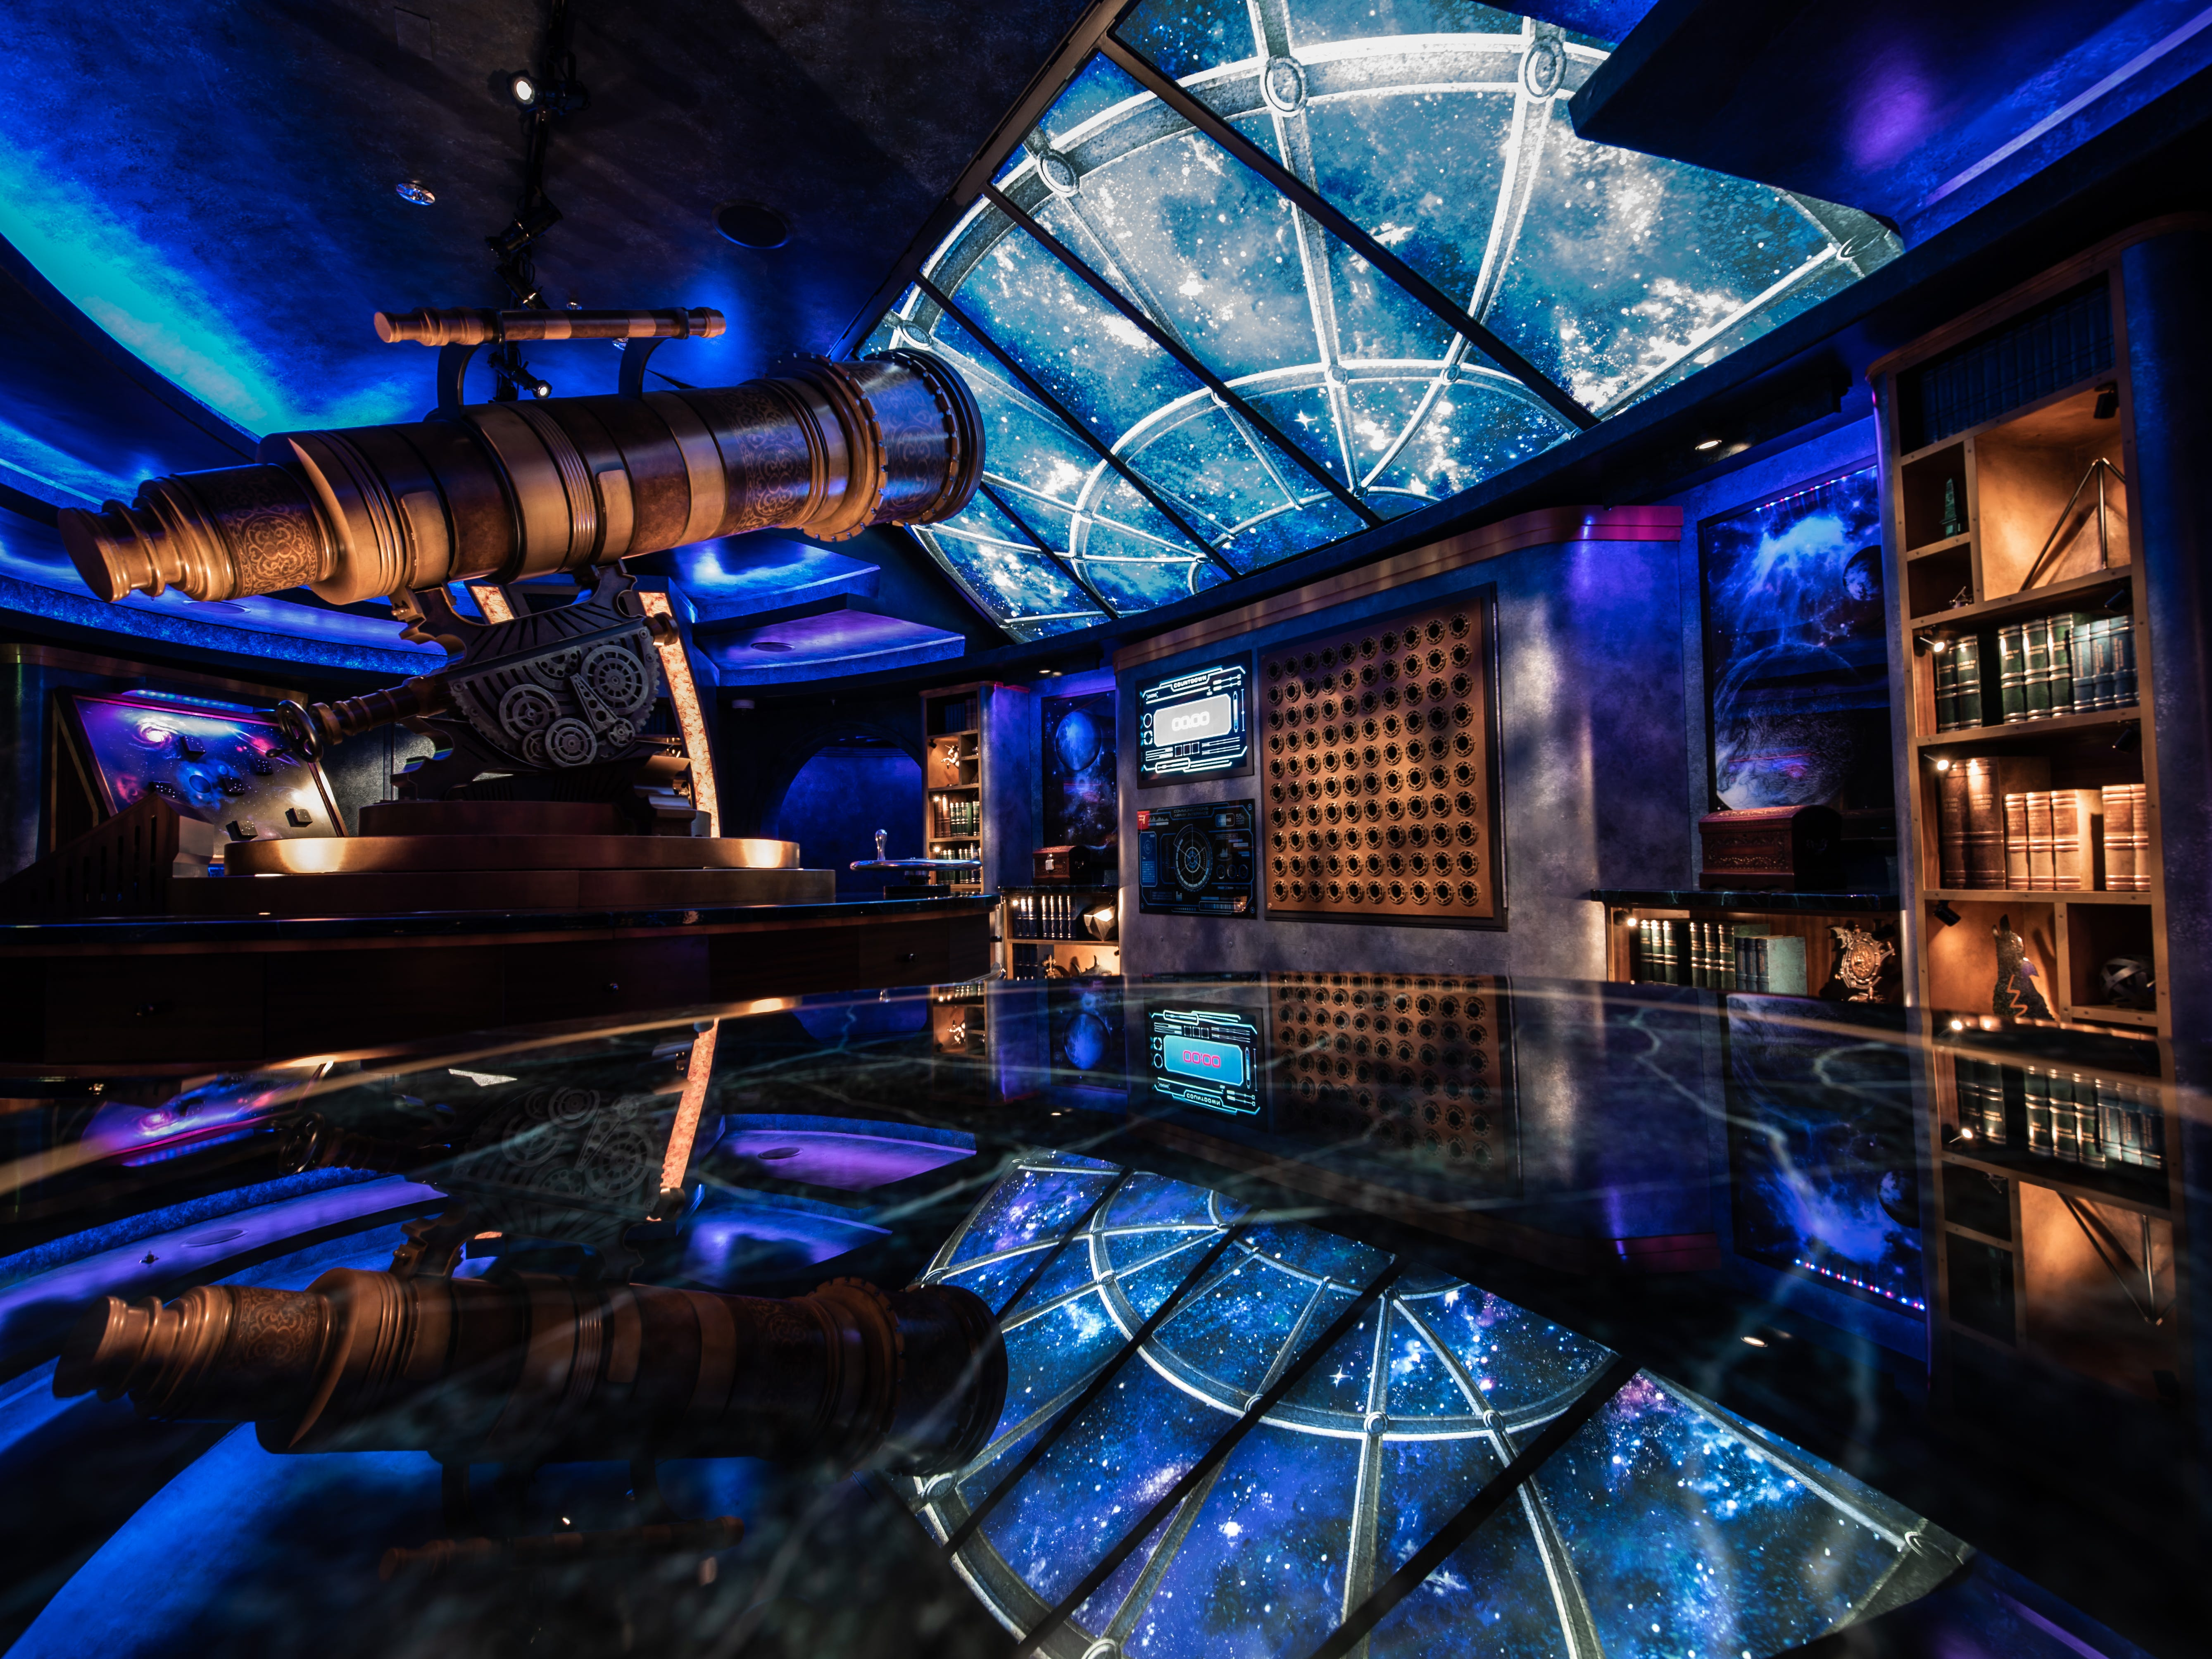 Escape rooms have found their way to sea, including the elaborate Puzzle Break: Escape the Observatorium, featured on Royal Caribbean's Independence of the Seas and Mariner of the Seas cruise ships.